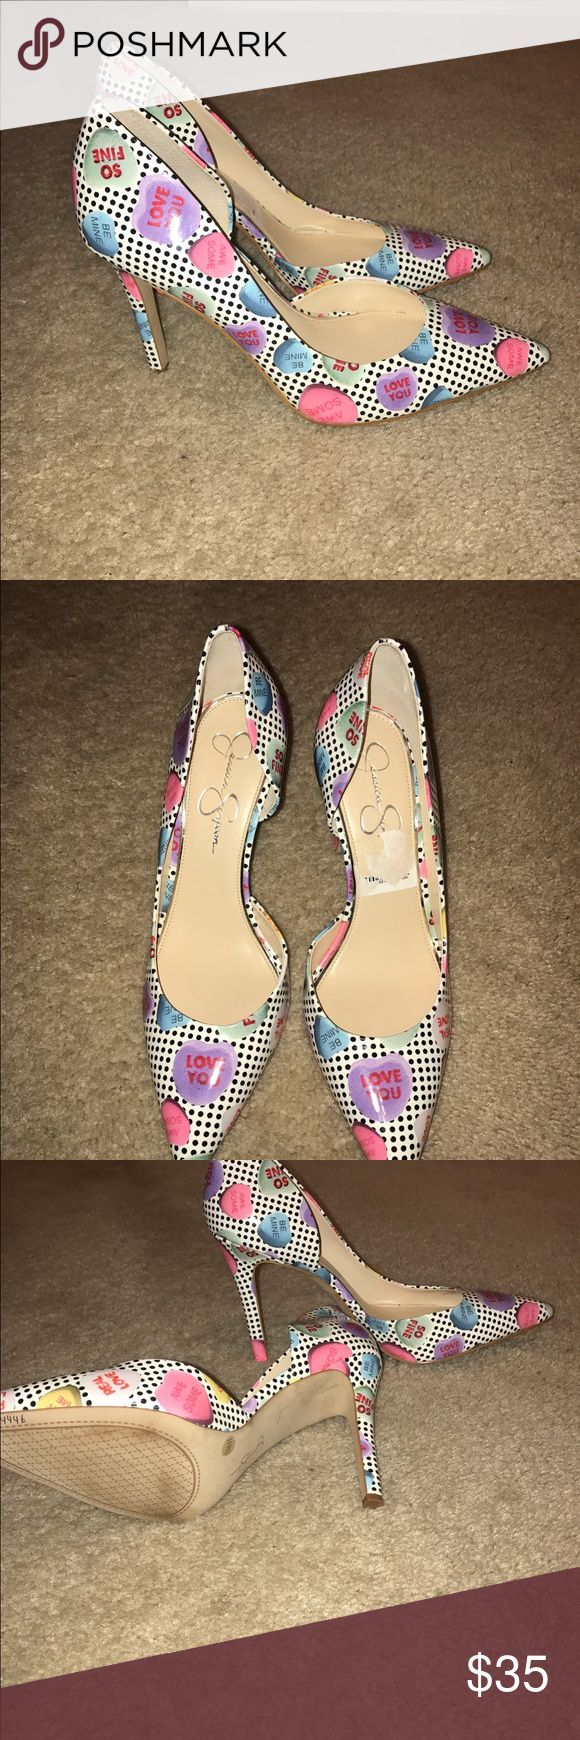 Jessica Simpson Valentines candy high heels Have a fun Valentines Night out with these cute heels.  New. Never worn.  Originally purchased from HSN Outlet store in FL...never found an occasion to wear them so now I am passing them on to you! Jessica Simpson Shoes Heels